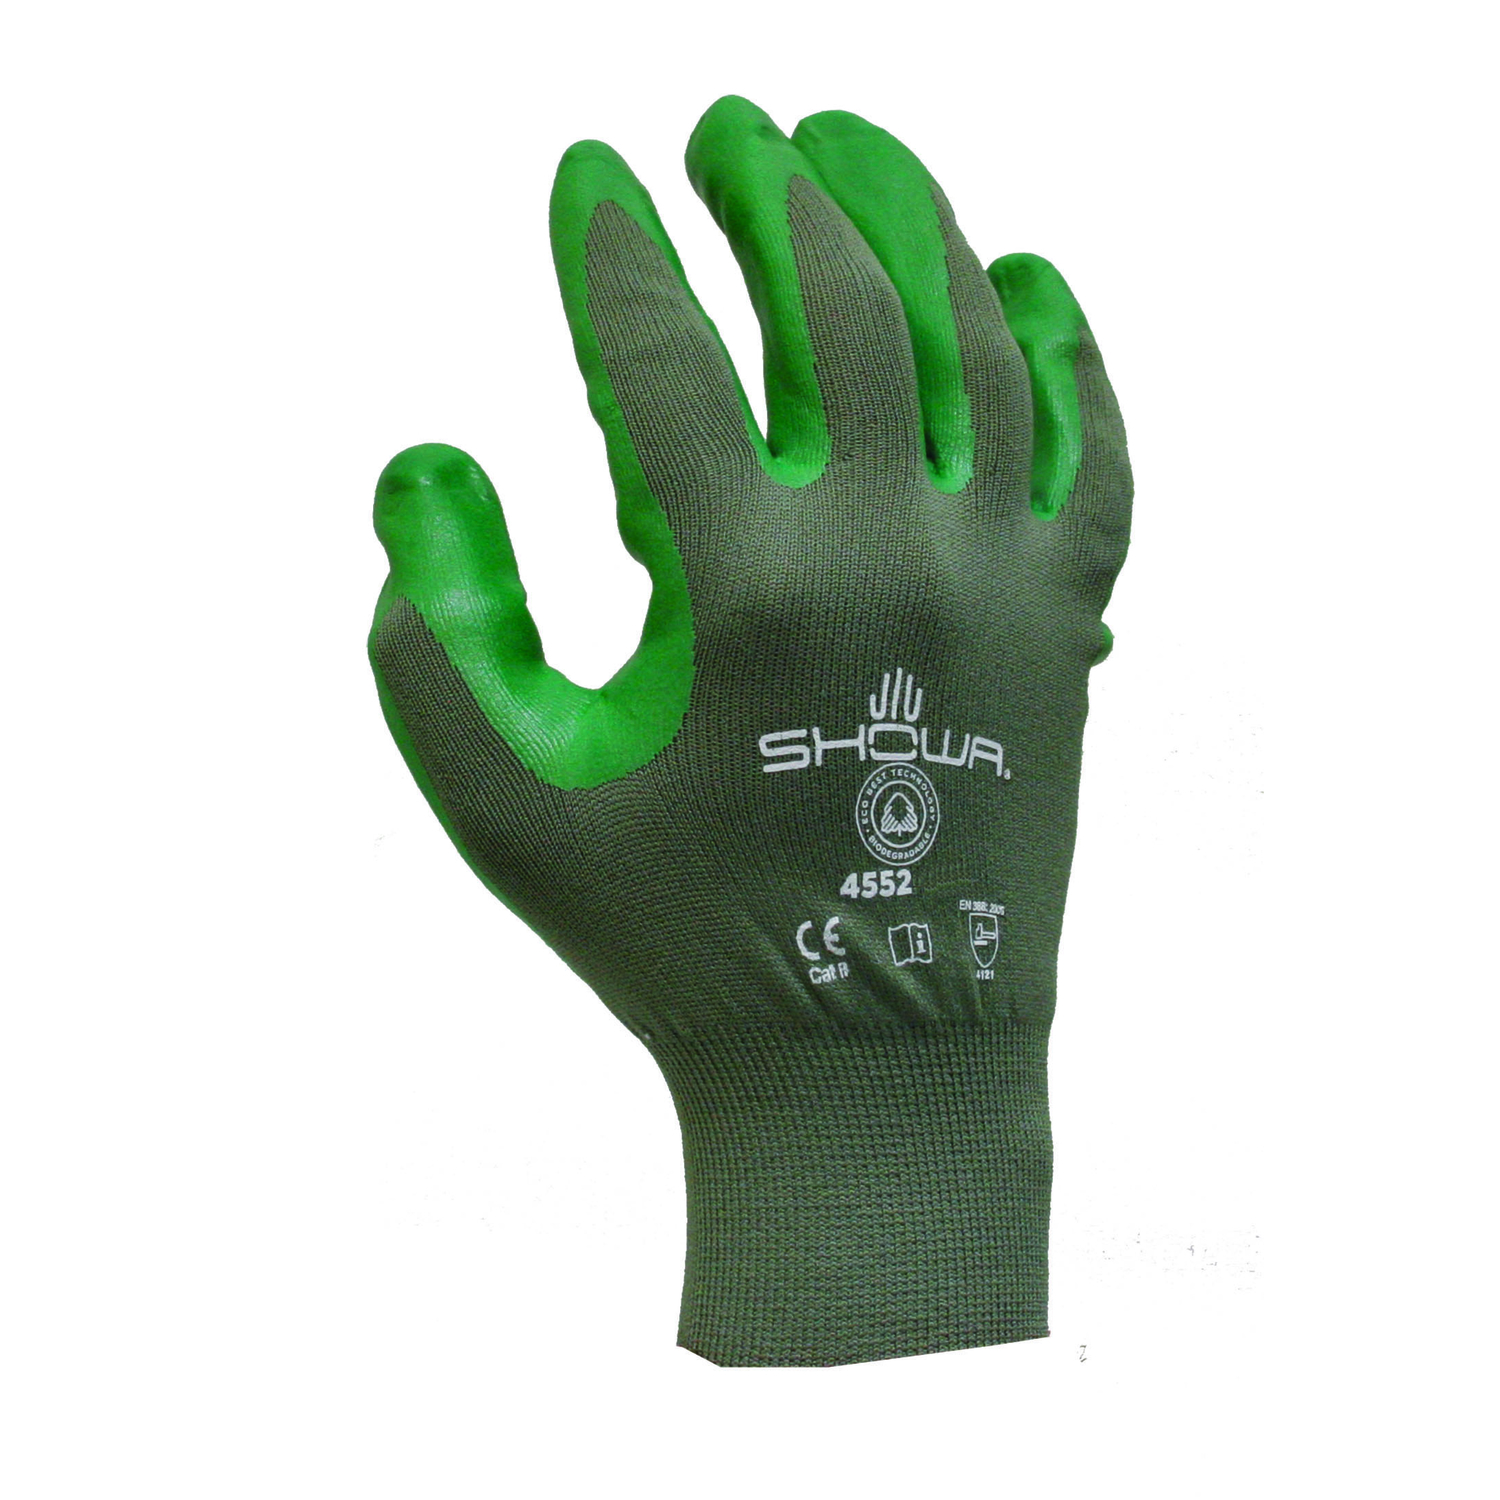 Showa  Unisex  Indoor/Outdoor  Nitrile  Coated  Green  L  Work Gloves